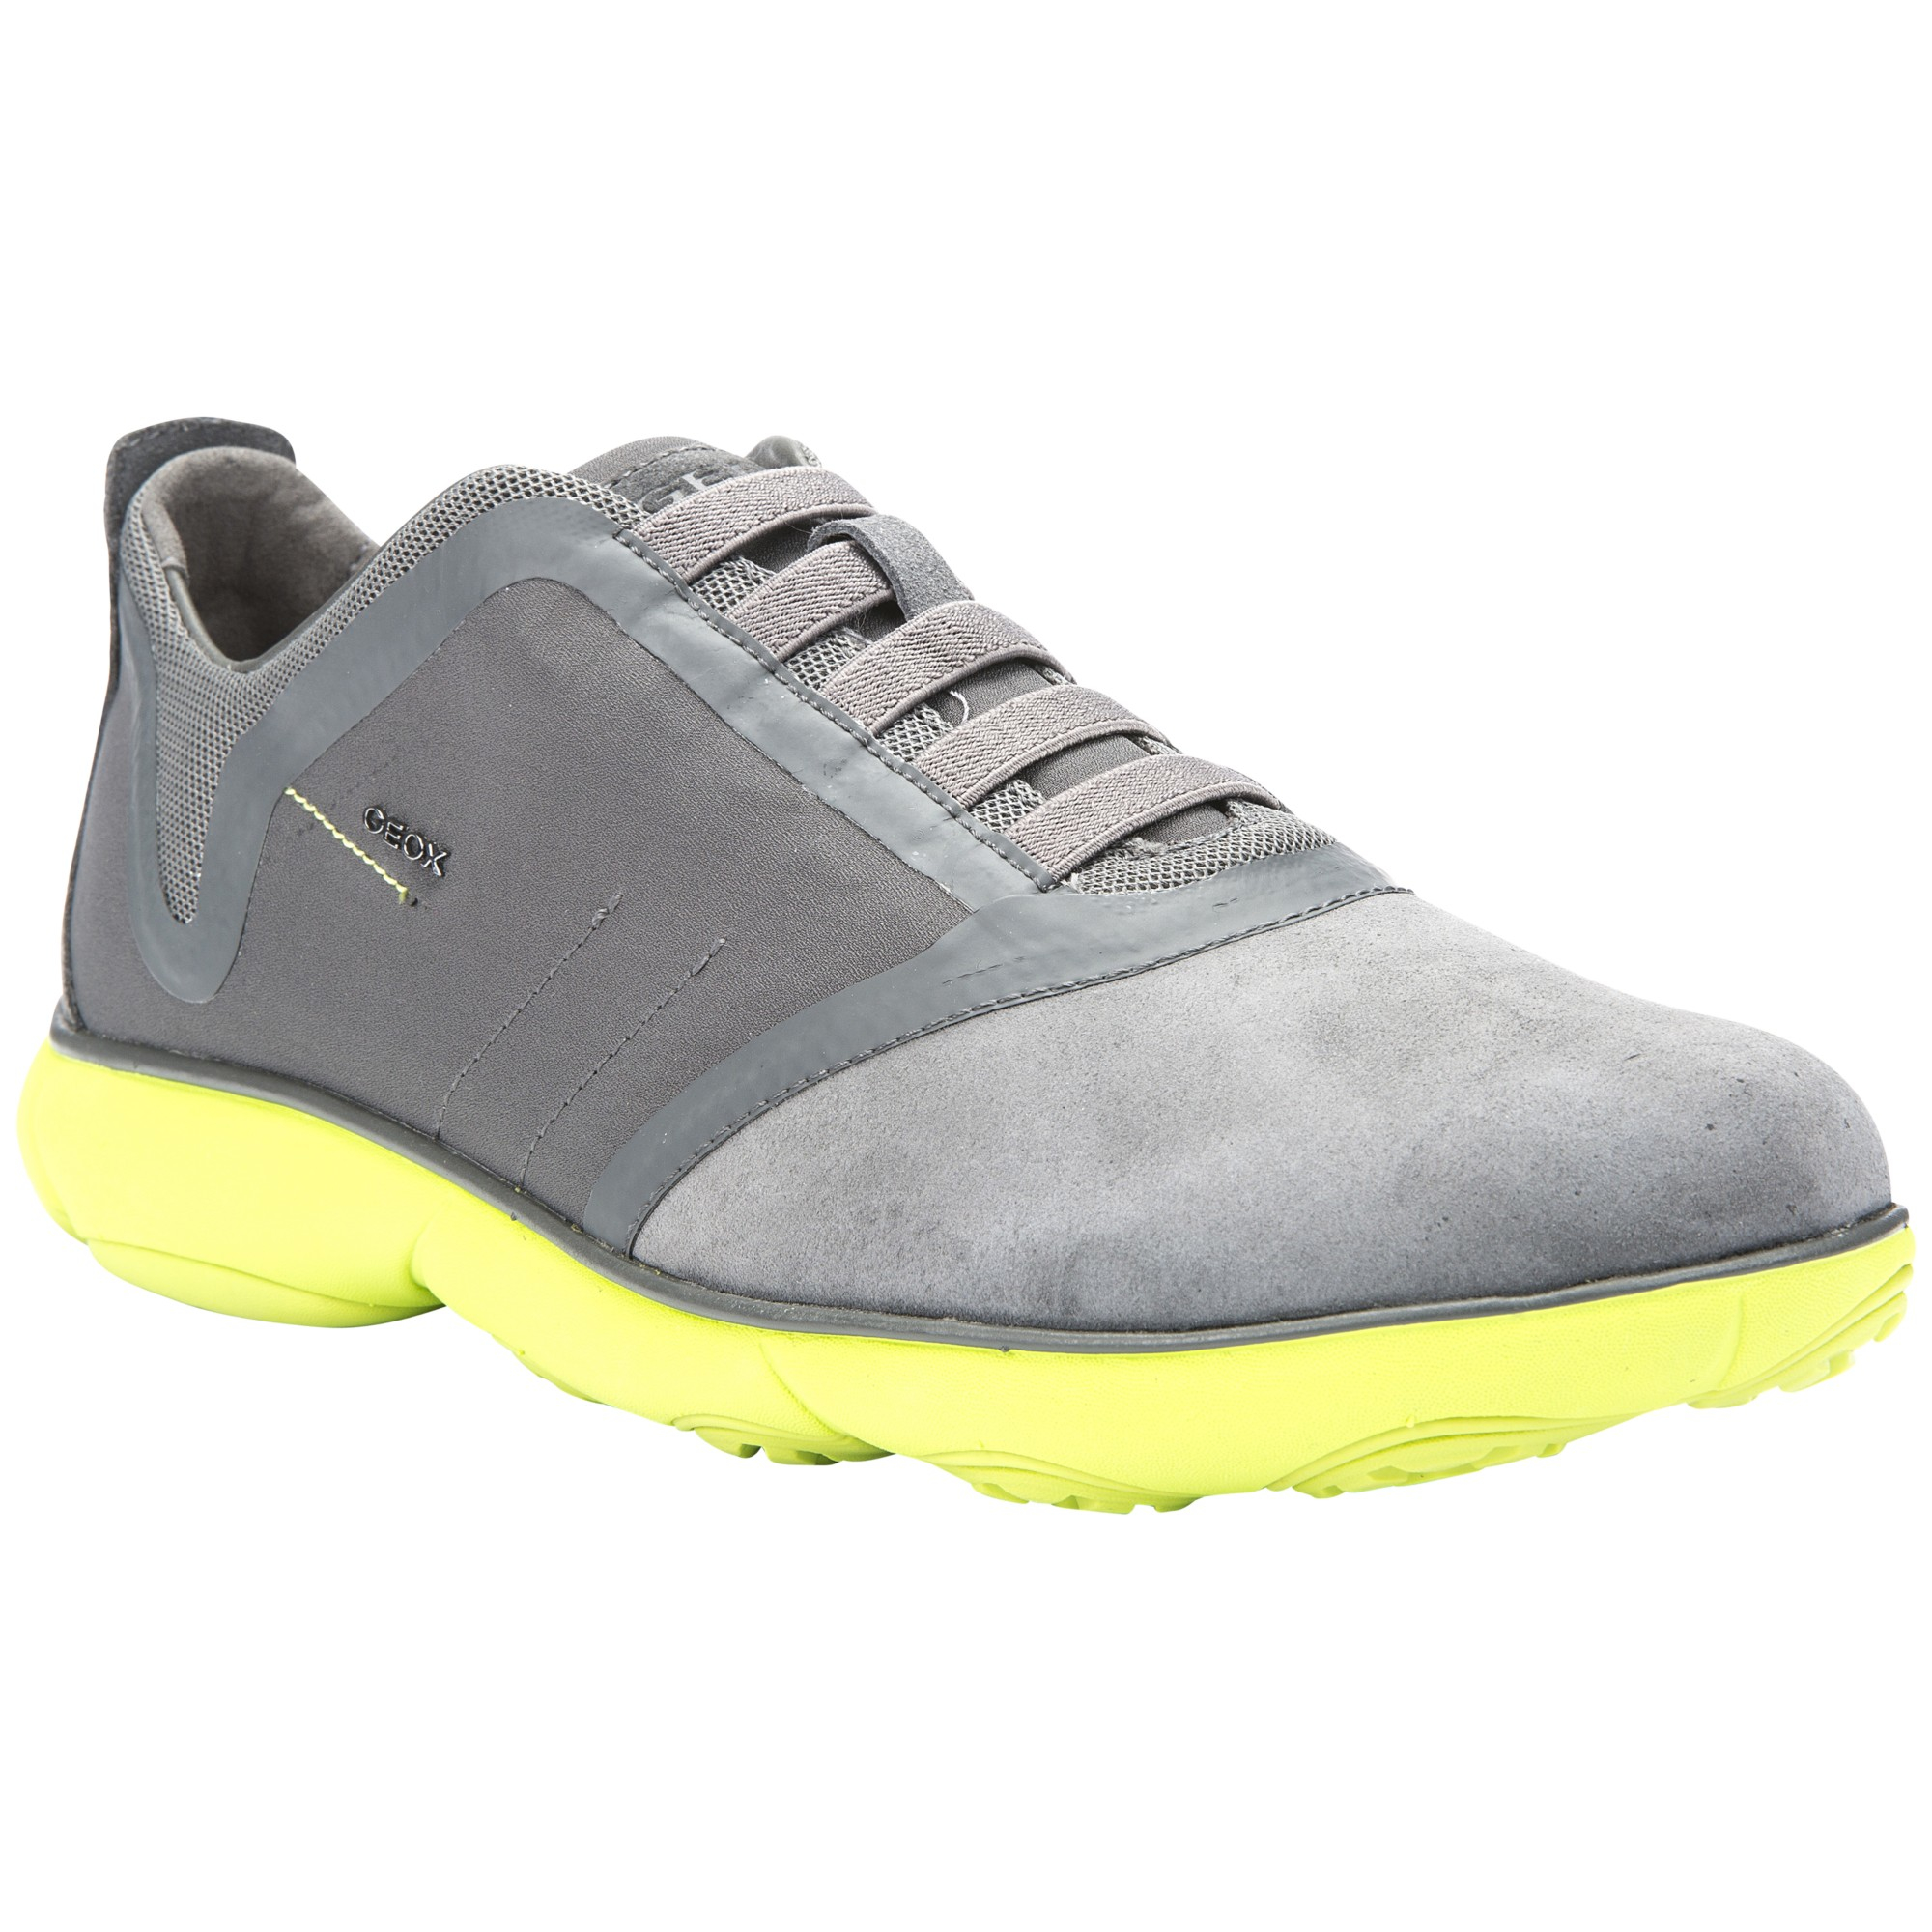 42c39d0a1a Geox Nebula 3d Trainers in Gray for Men - Lyst